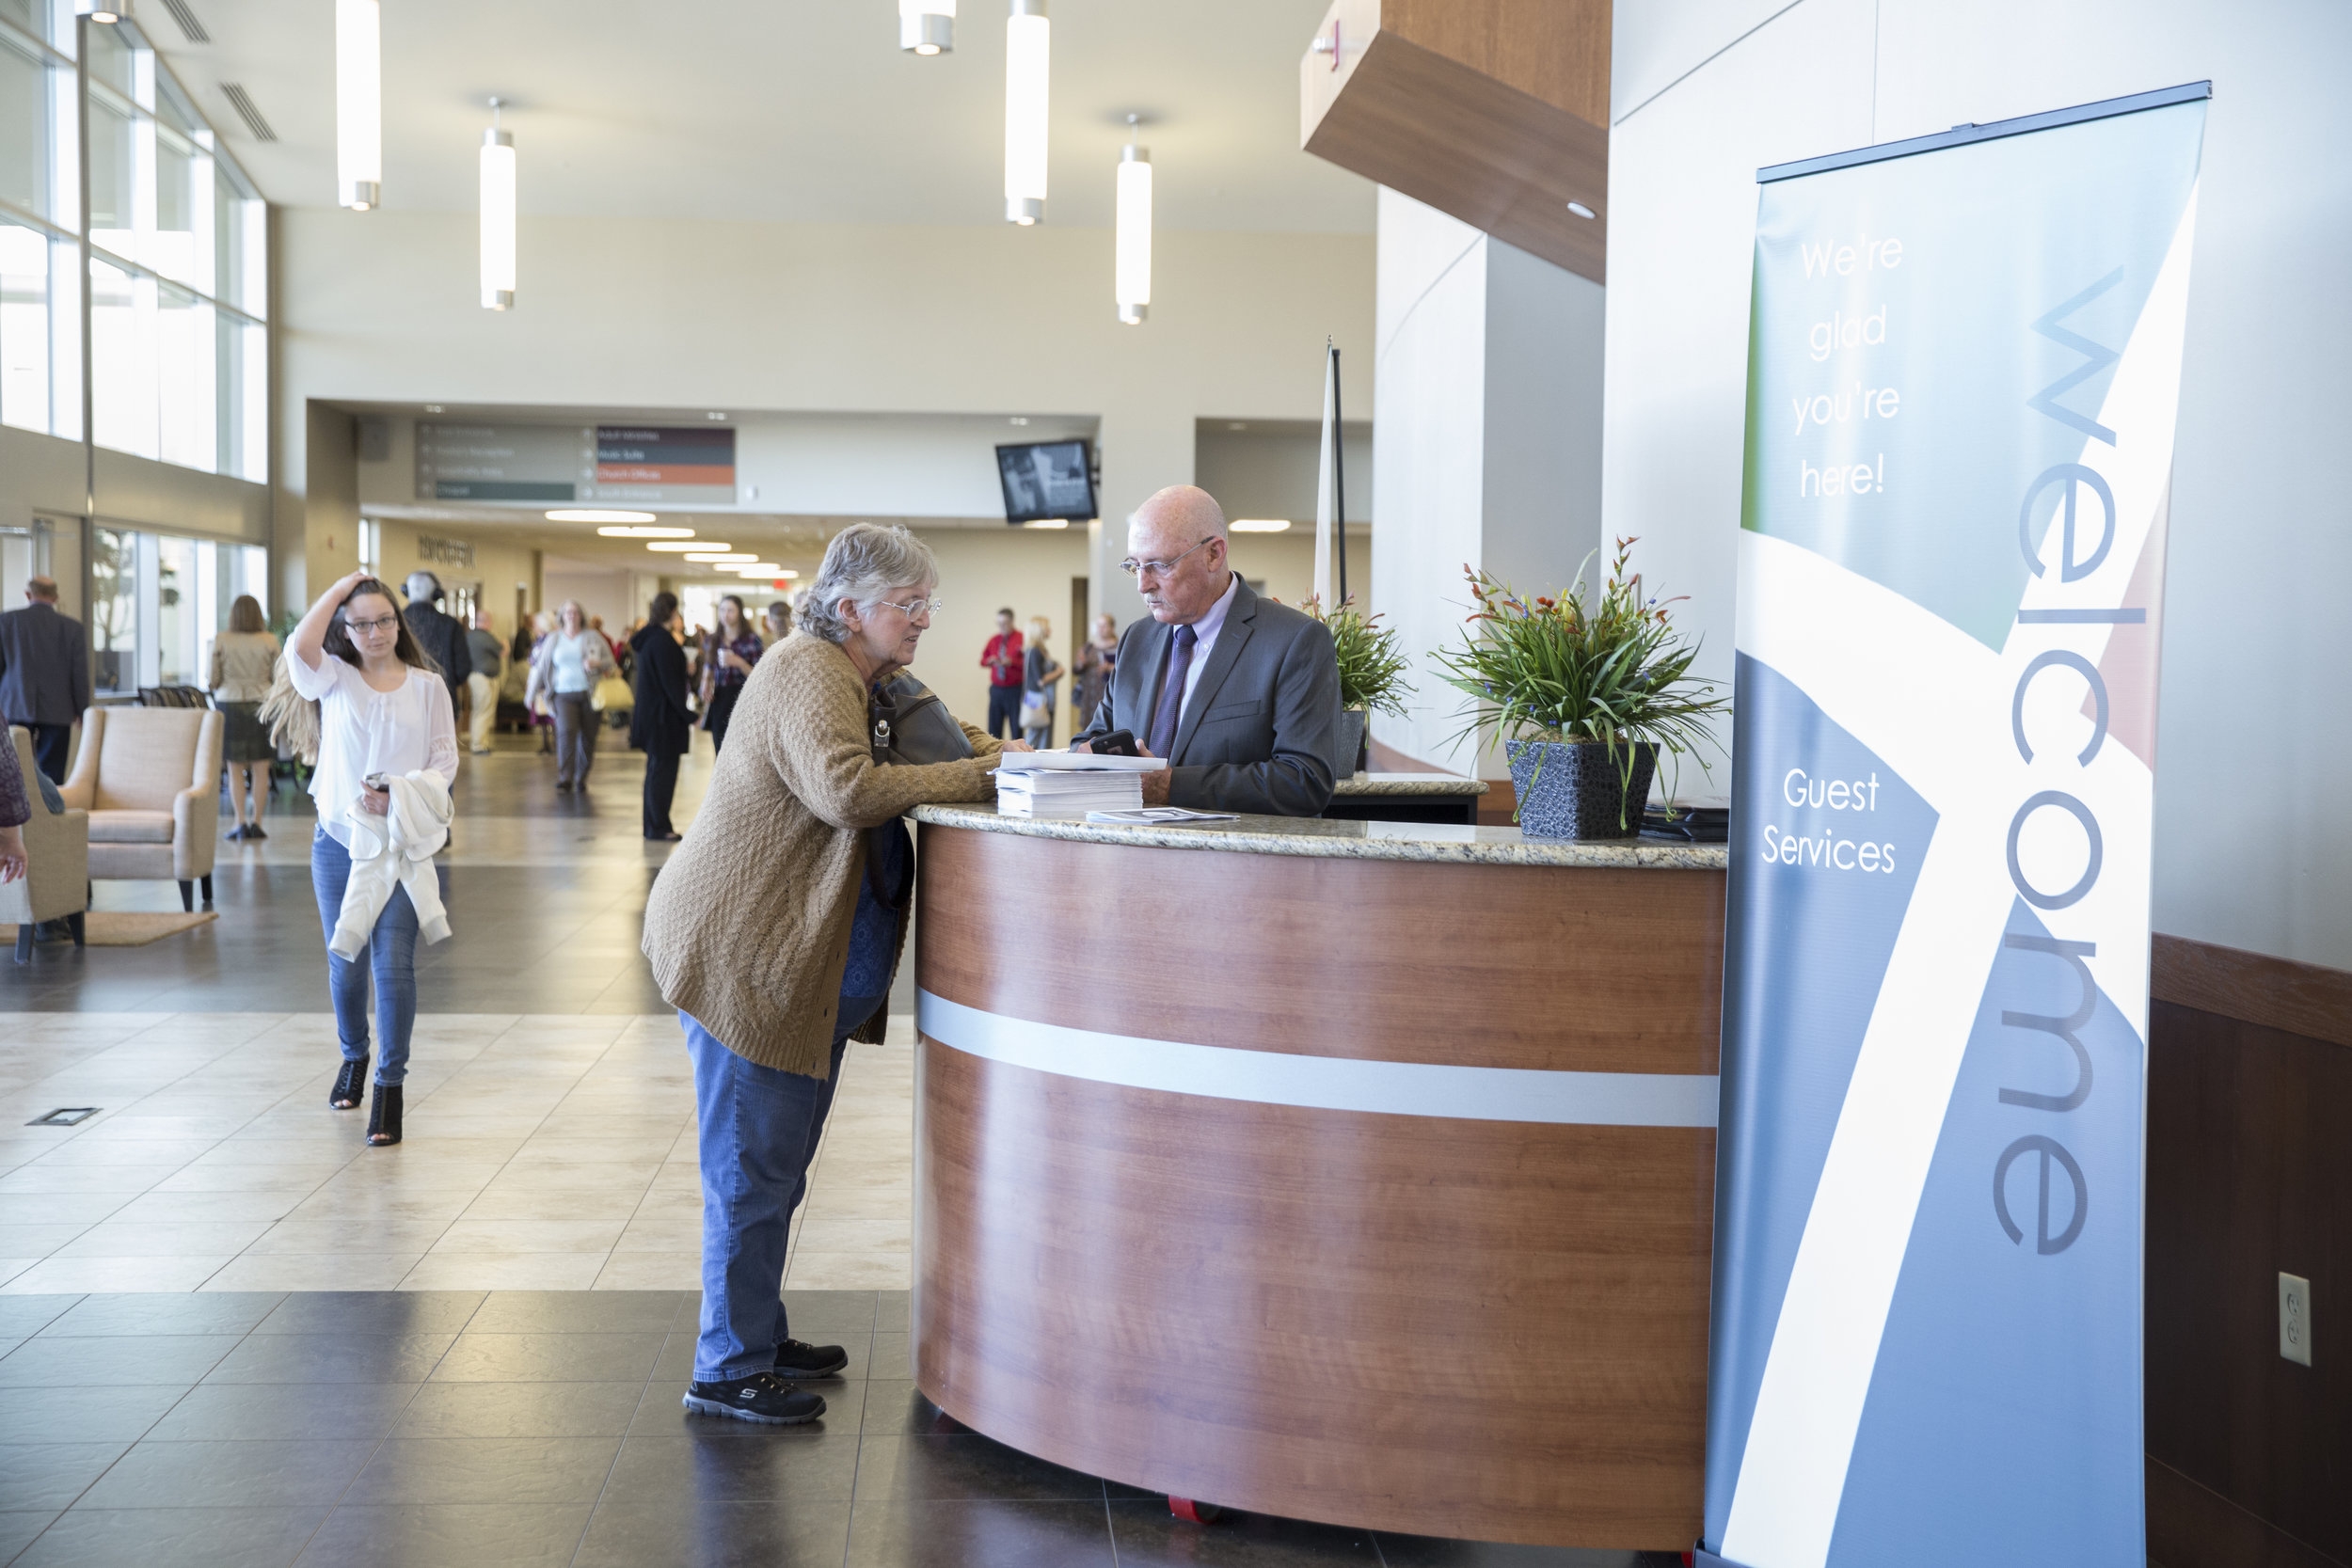 First Impressions - If you love people or love to serve, First Impressions is your team. Whether parking, greeting, serving coffee or ushering, you help welcome our guests to make sure they have a great experience.